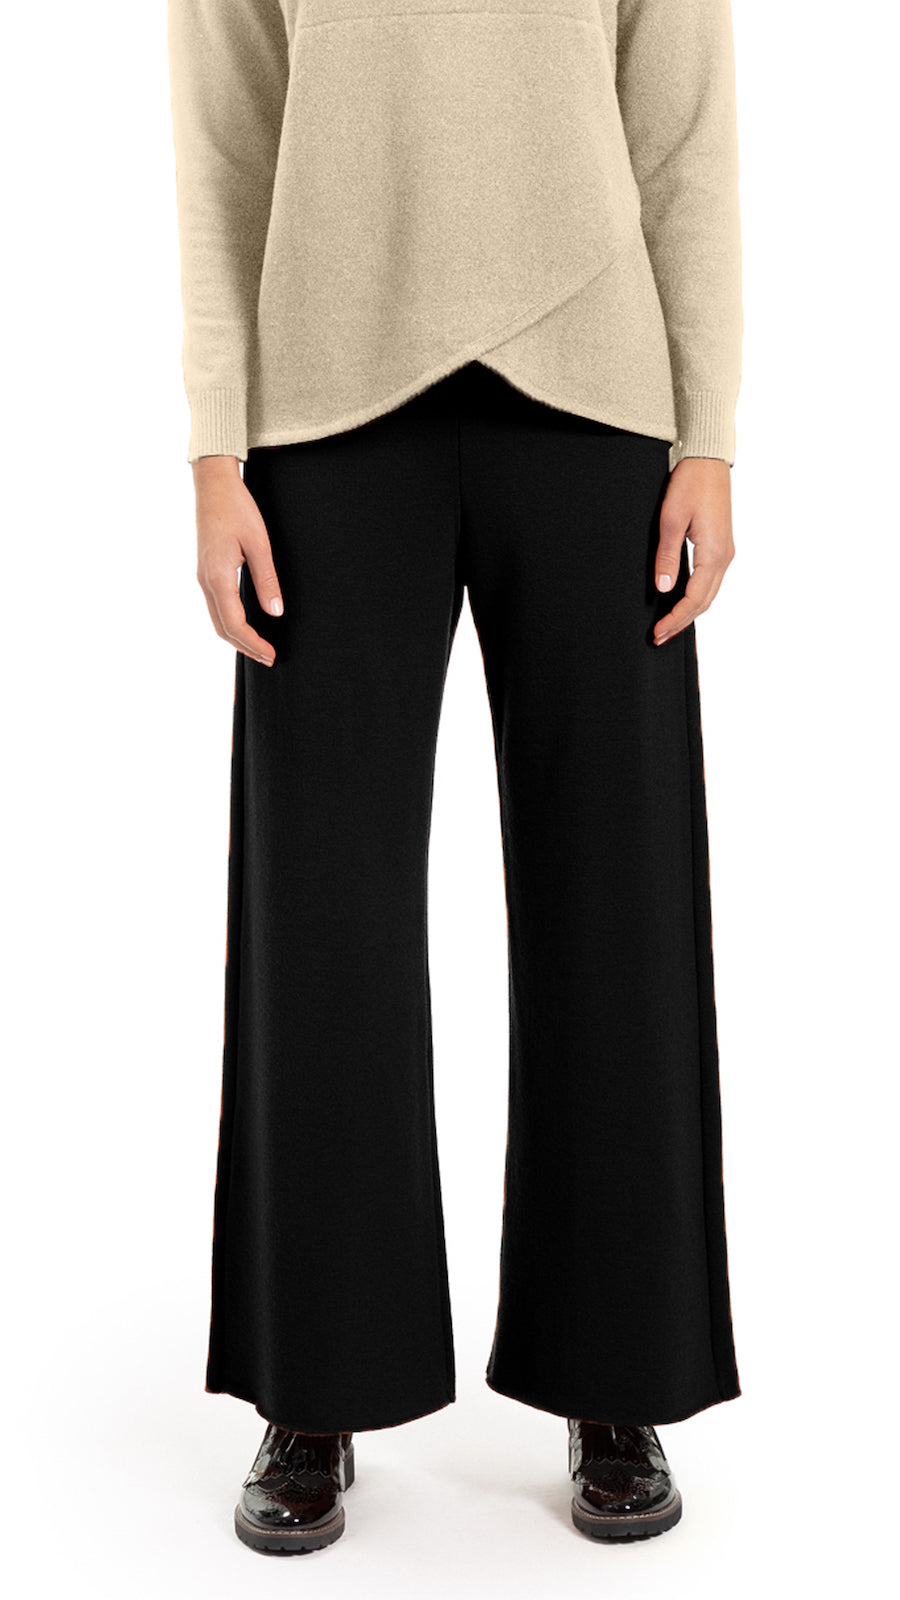 Portia Milano knit pants, Black